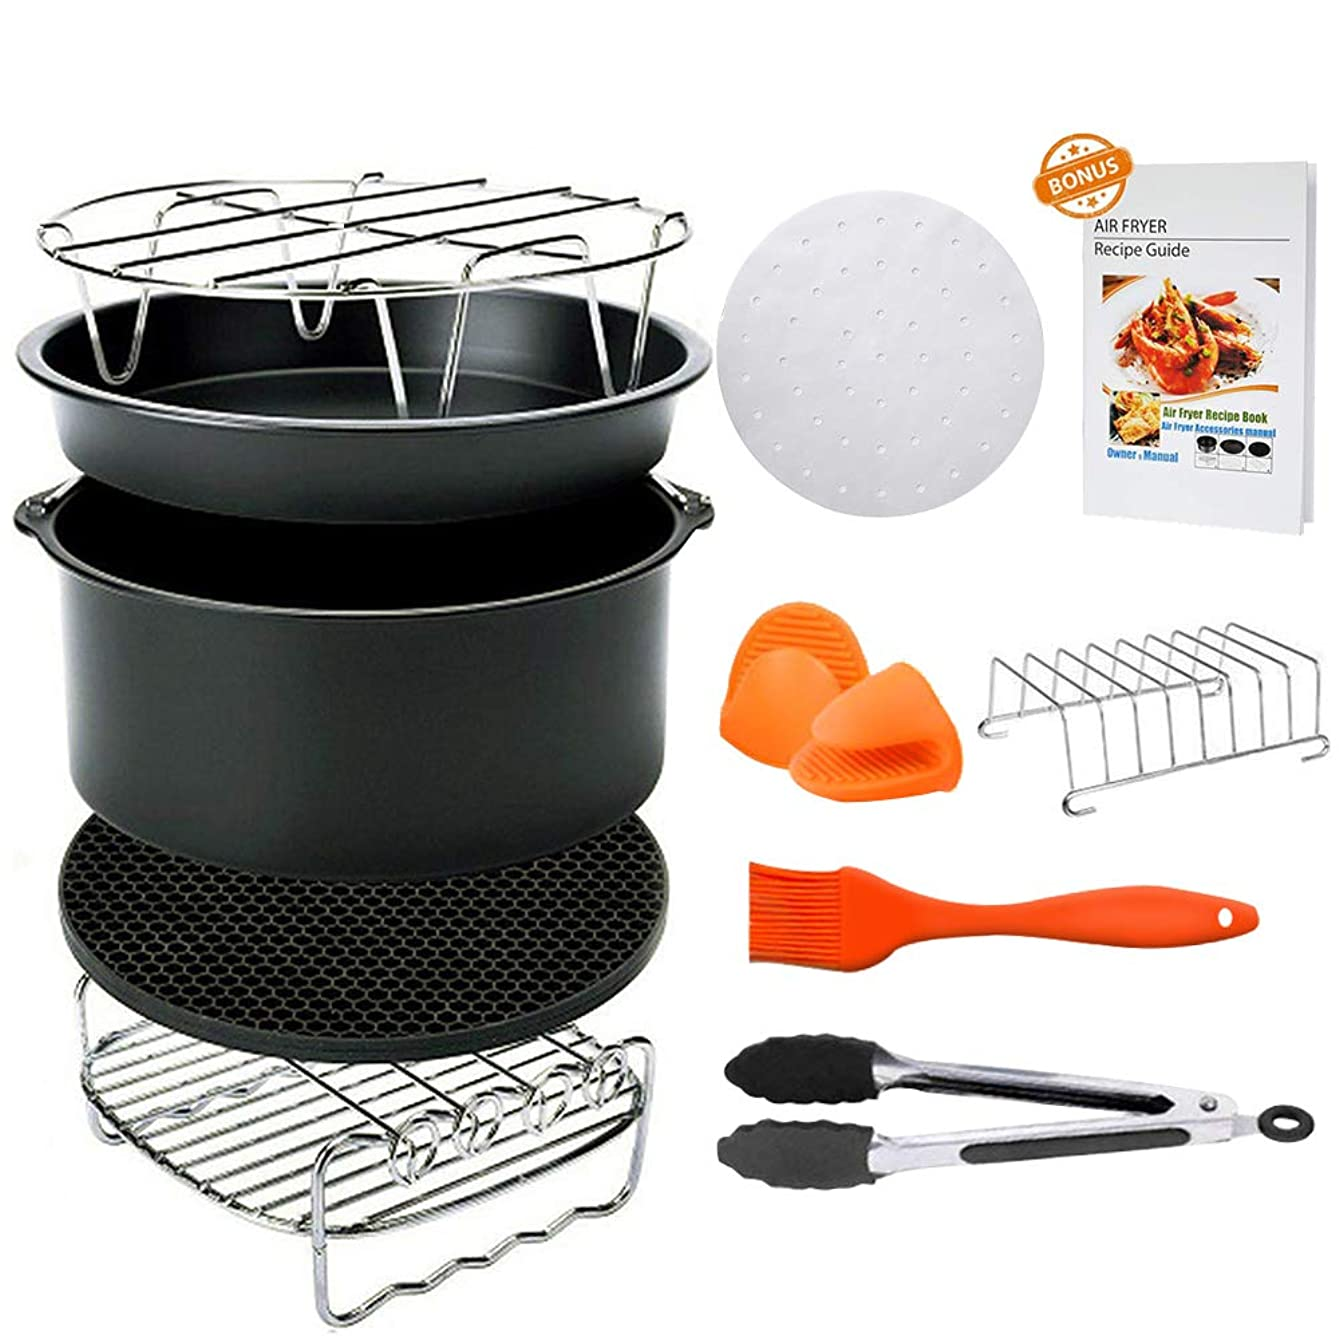 8 inch Air Fryer Accessories, Blusmart 11 pcs Deep Fryer Accessories Set for GoWISE Phillips COSORI Ninja Air Fryer 4.2 QT - 5.8 QT, FDA Approved, BPA Free,Cookbook Included